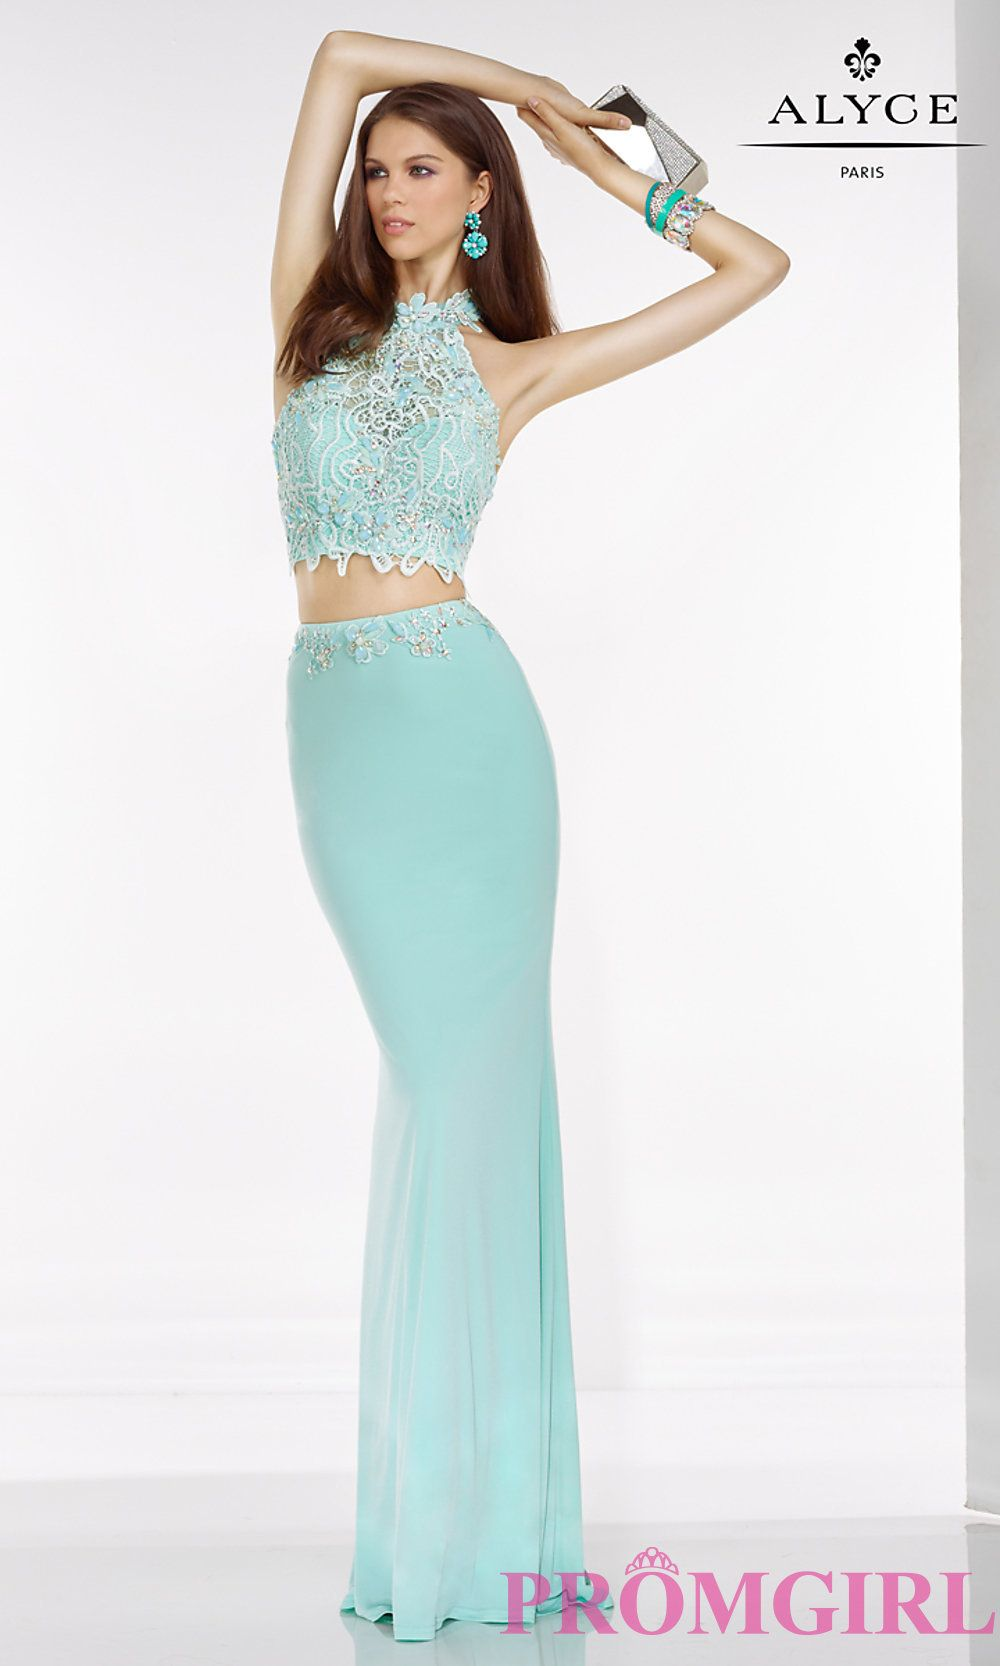 Two-Piece High-Neck Prom Dress by Alyce | Sexy, Prom dresses and Shops